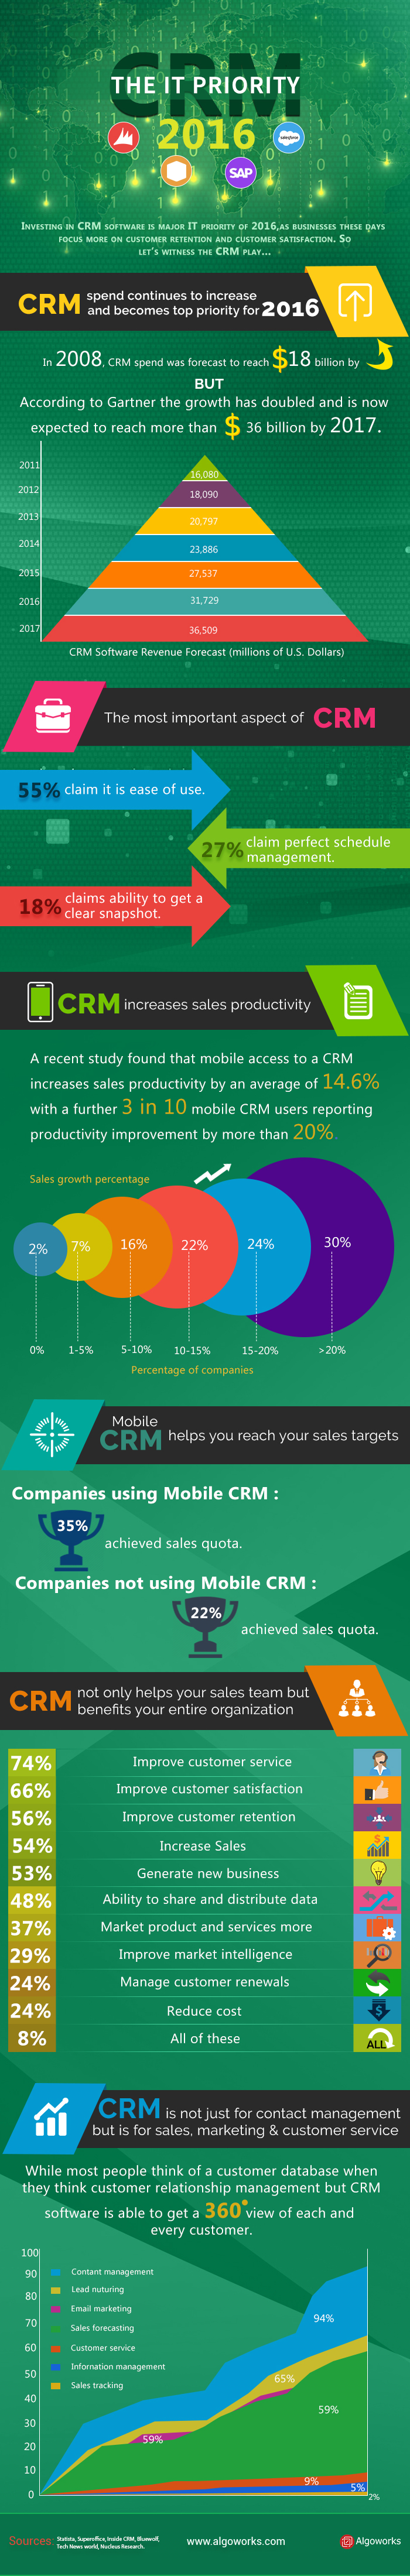 CRM – The IT Priority 2016 | An Infographic